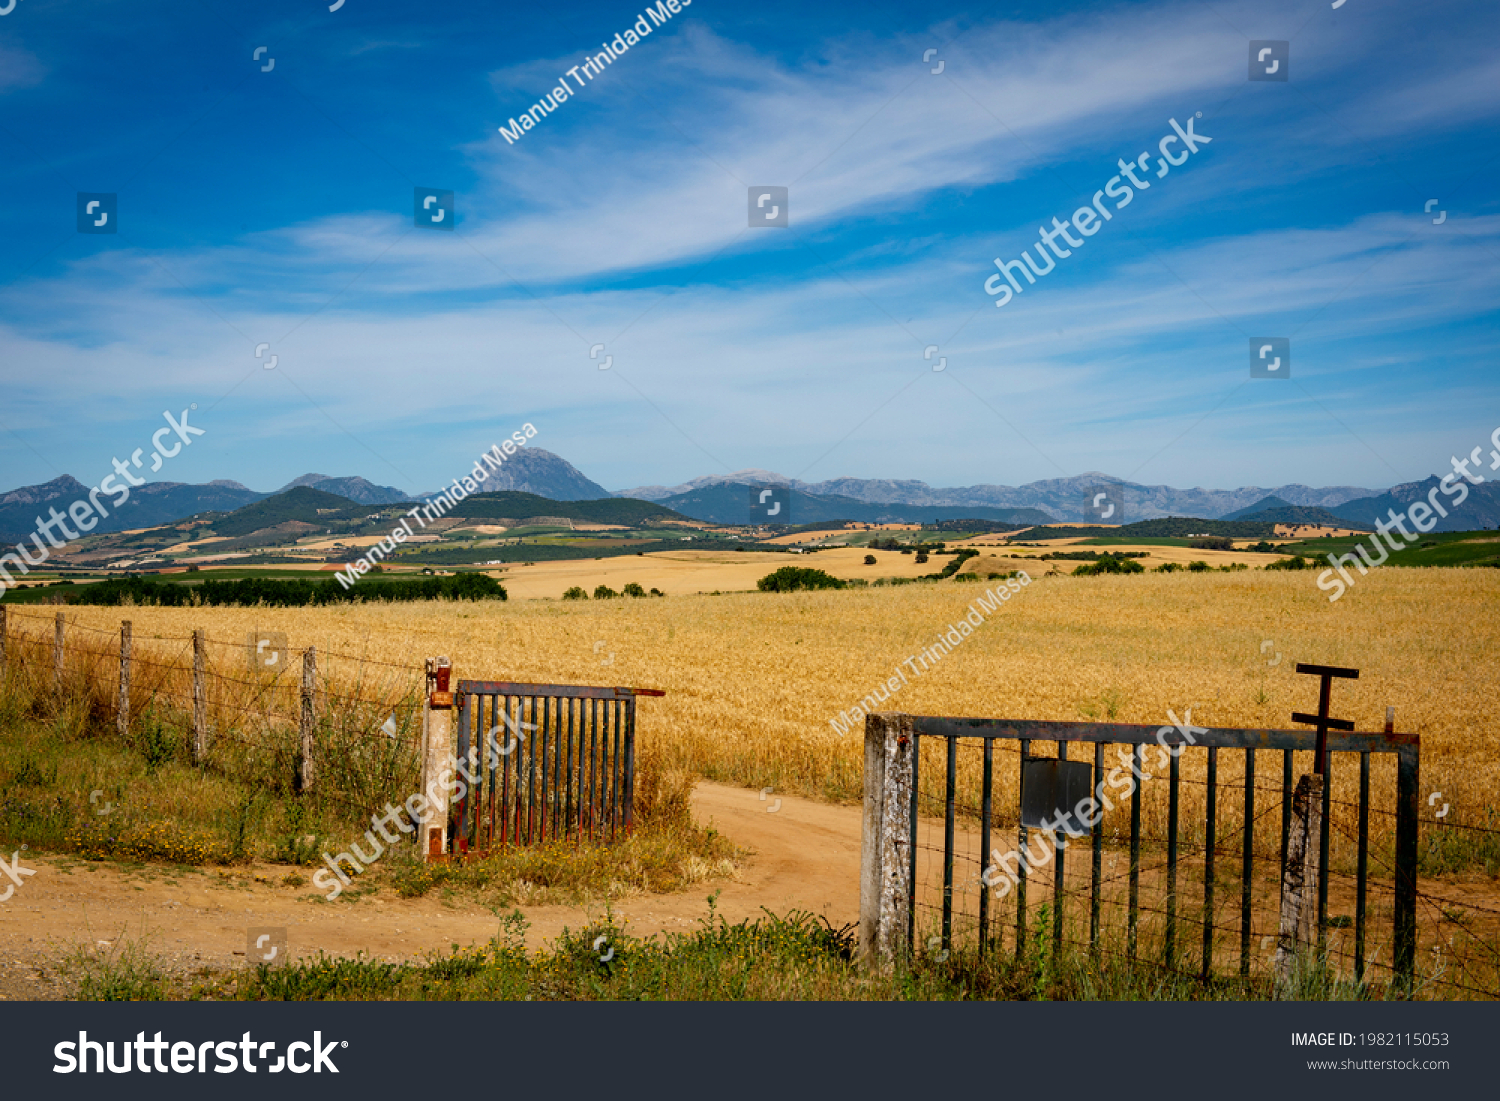 Entrance to a dry wheat field, mountains in the background